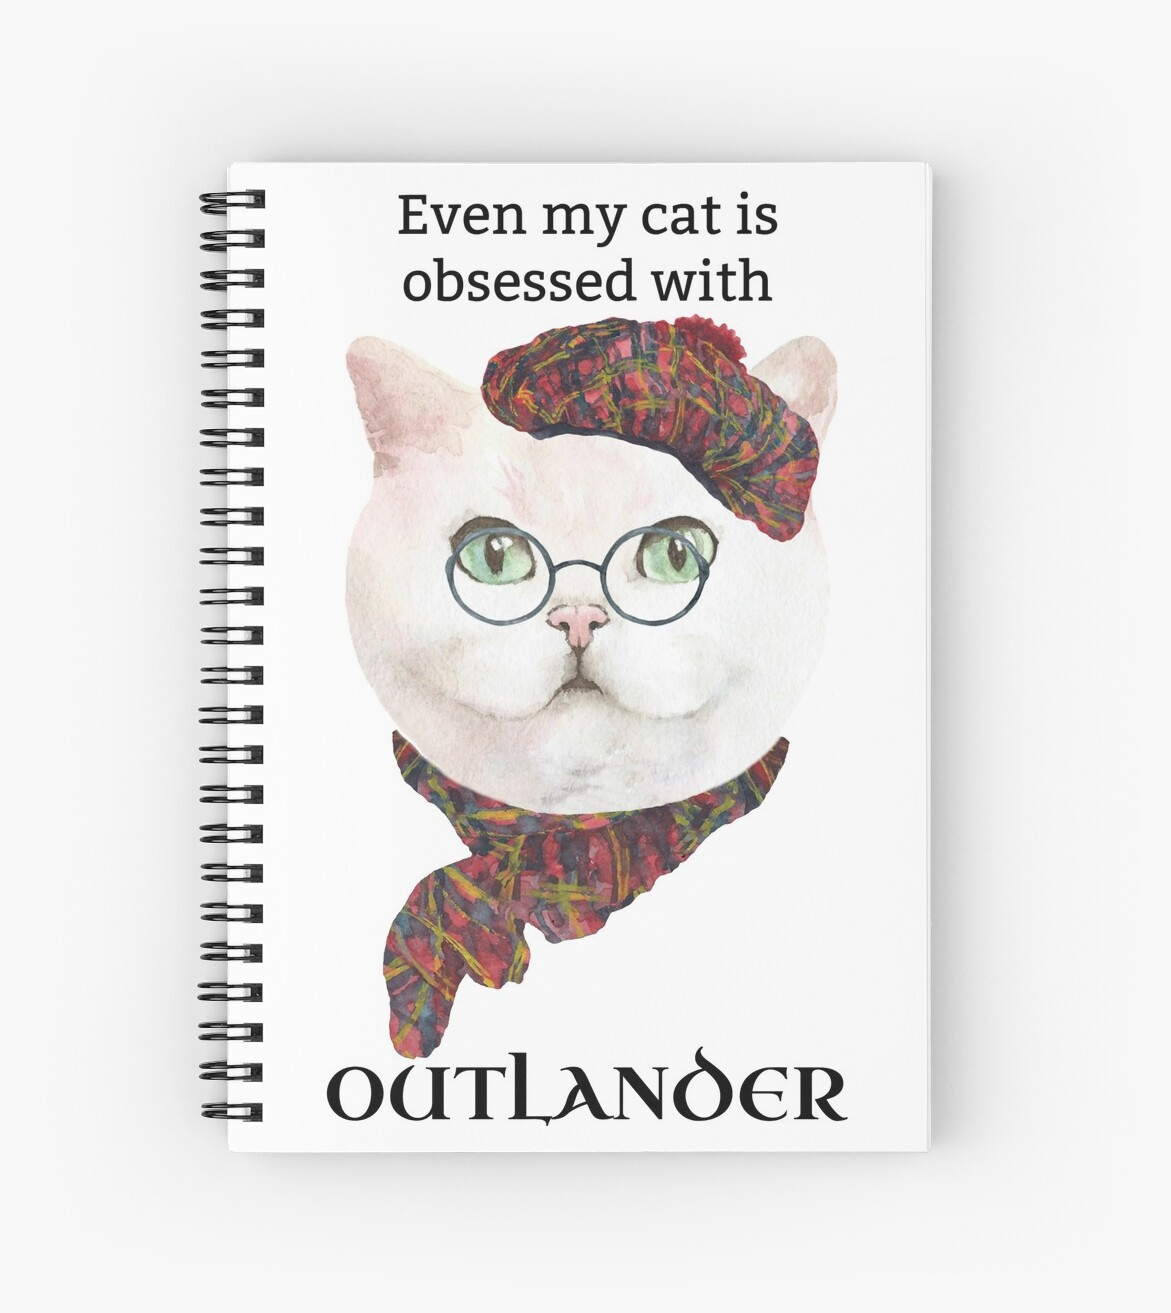 Funny Outlander Cat by itsagift